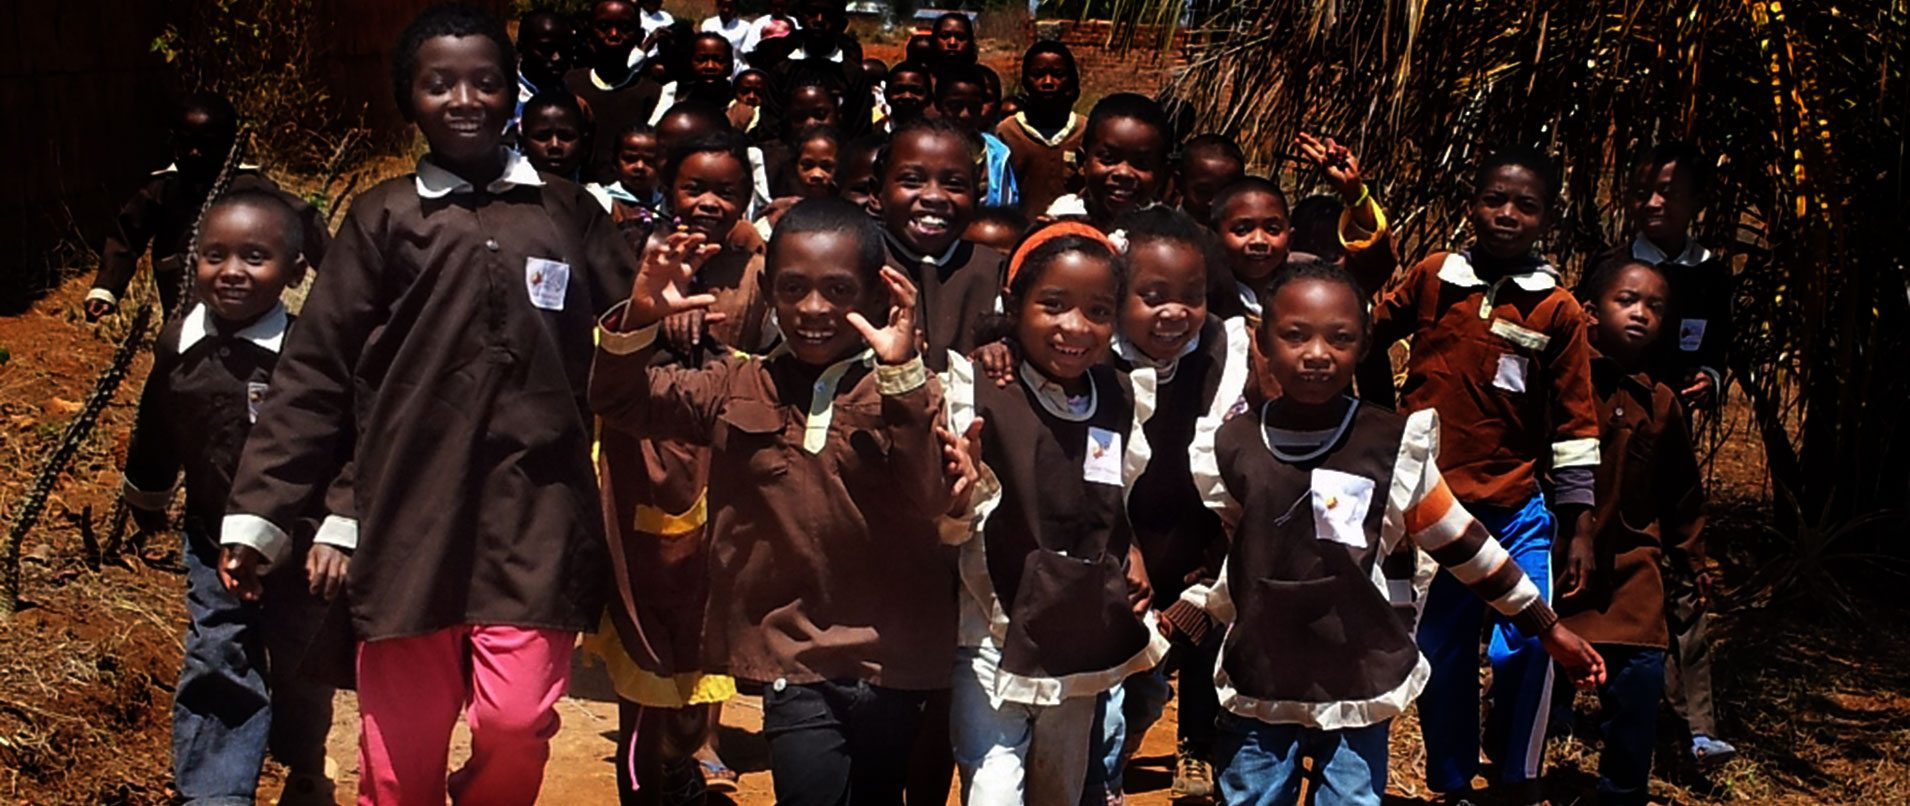 Community school madagascar